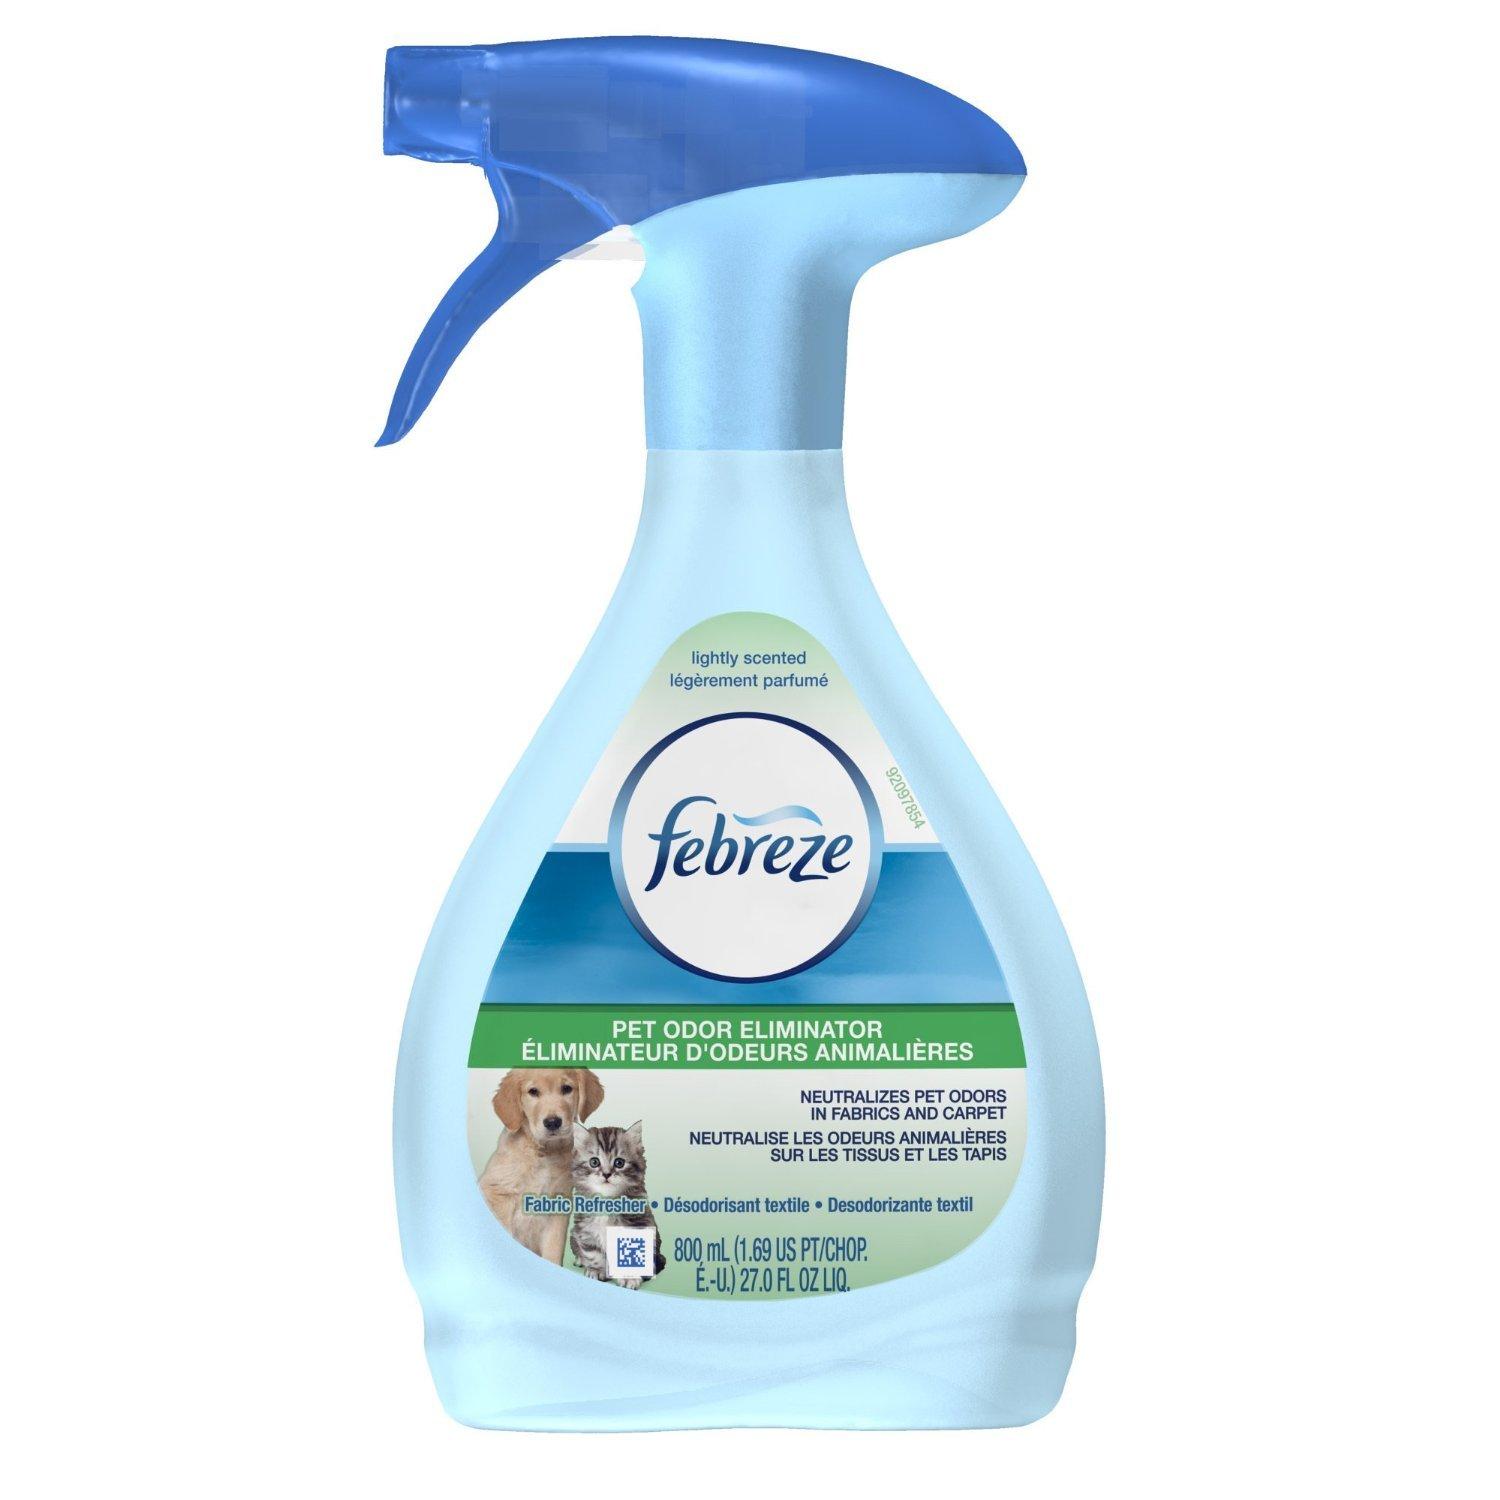 Febreze Fabric Refresher, Pet Odor Eliminator, 27 oz-2 Pack